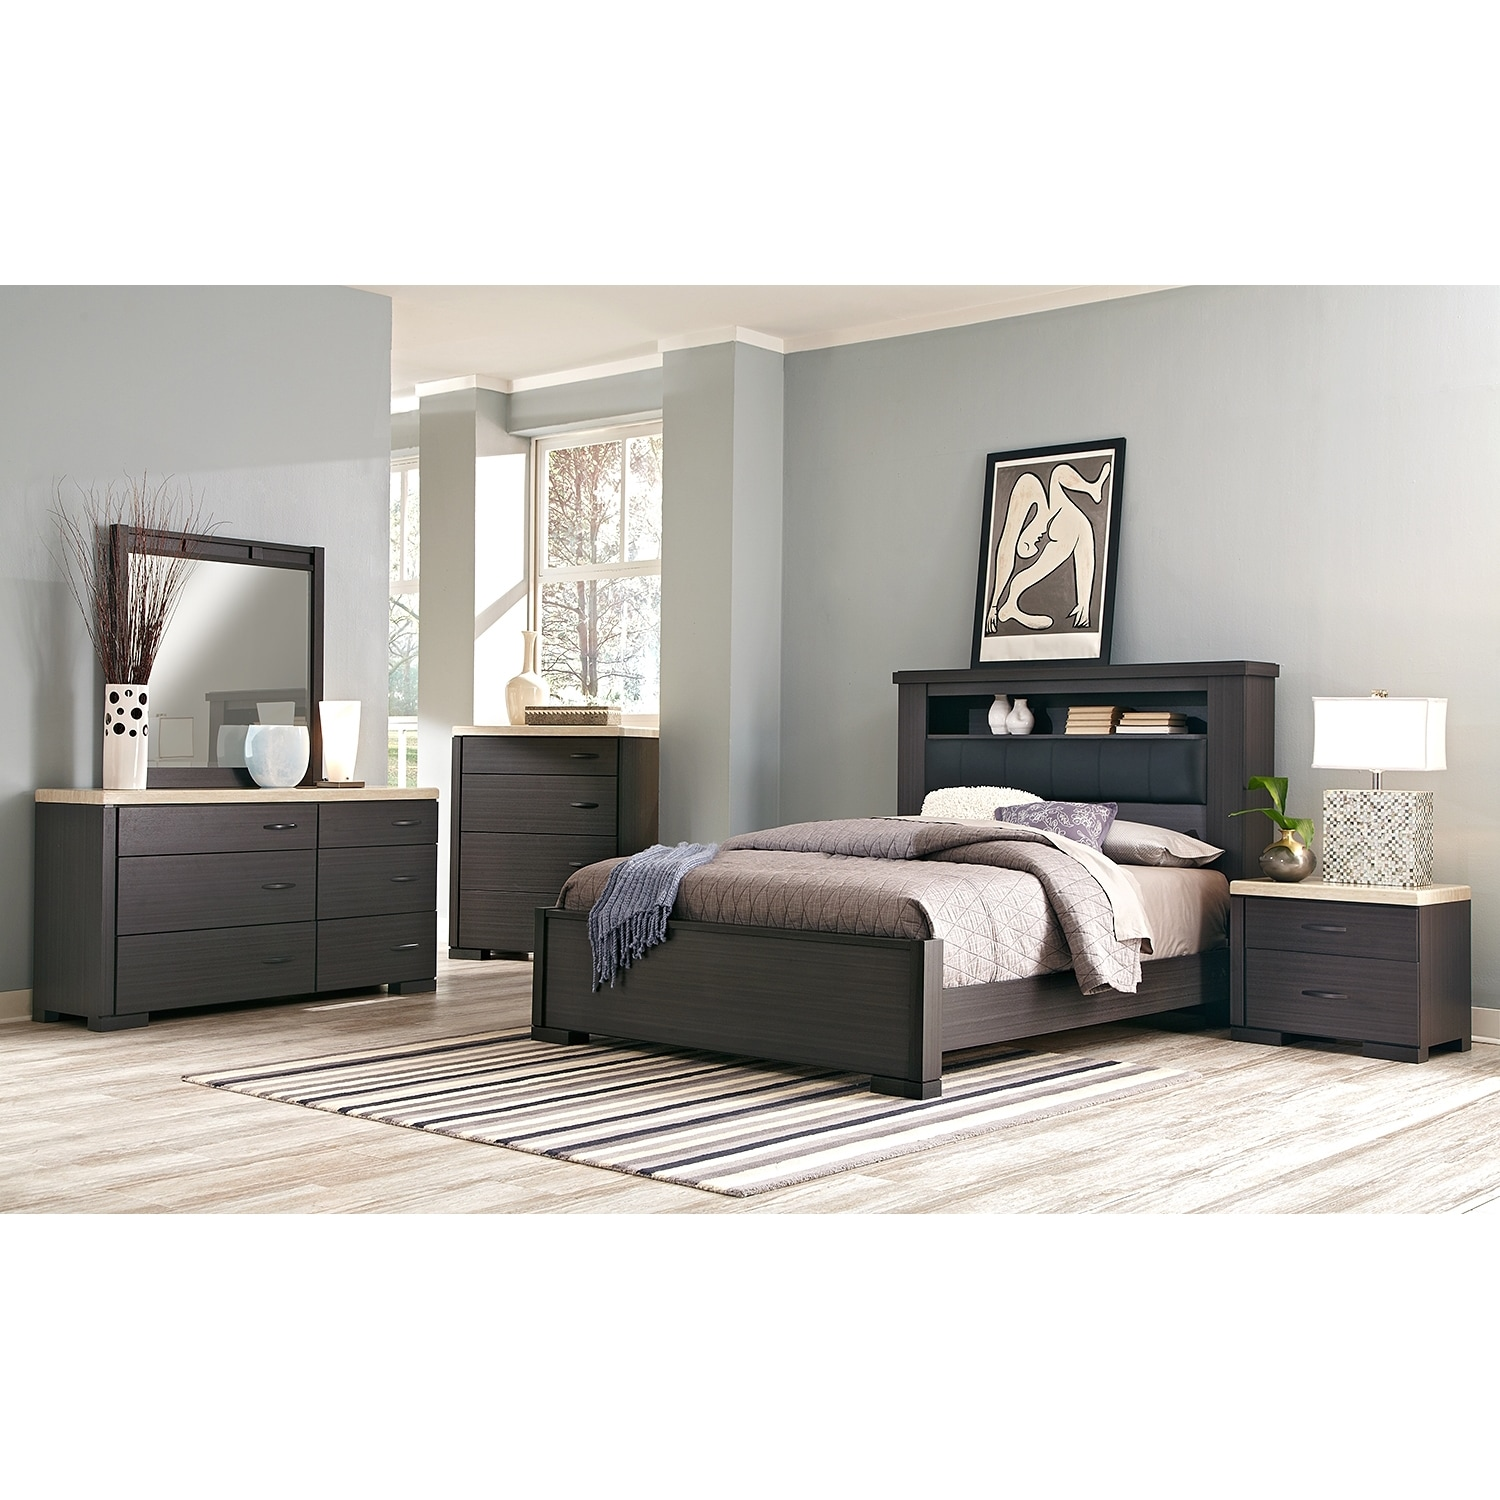 Bedroom Furniture   Camino 7 Piece Queen Bedroom Set   Charcoal And Ivory